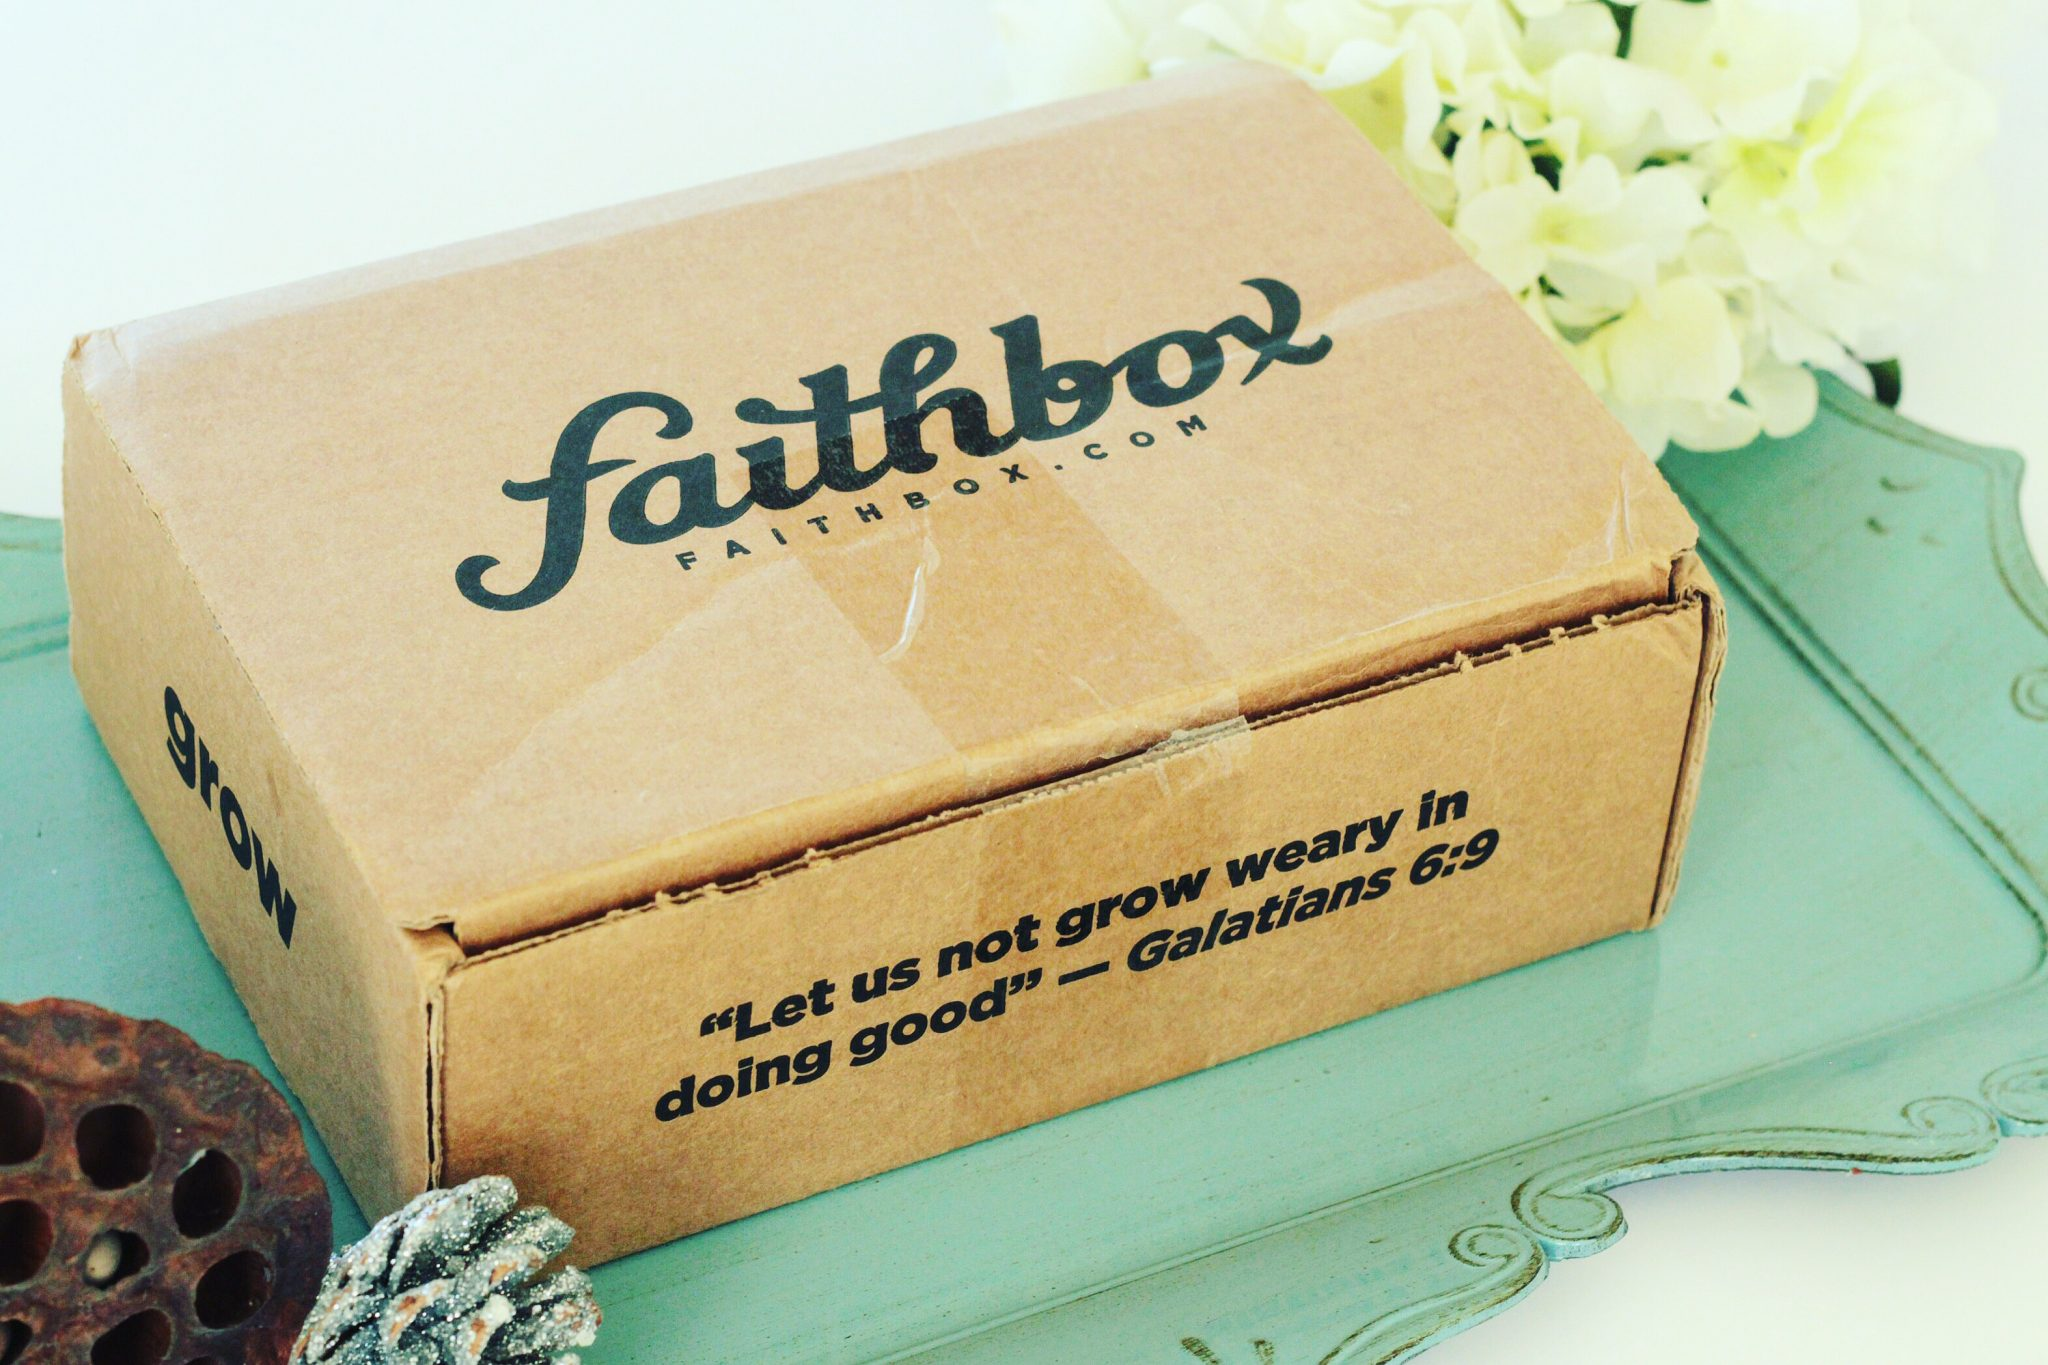 Box Alert! Unboxing and Review of Faithbox. graphic